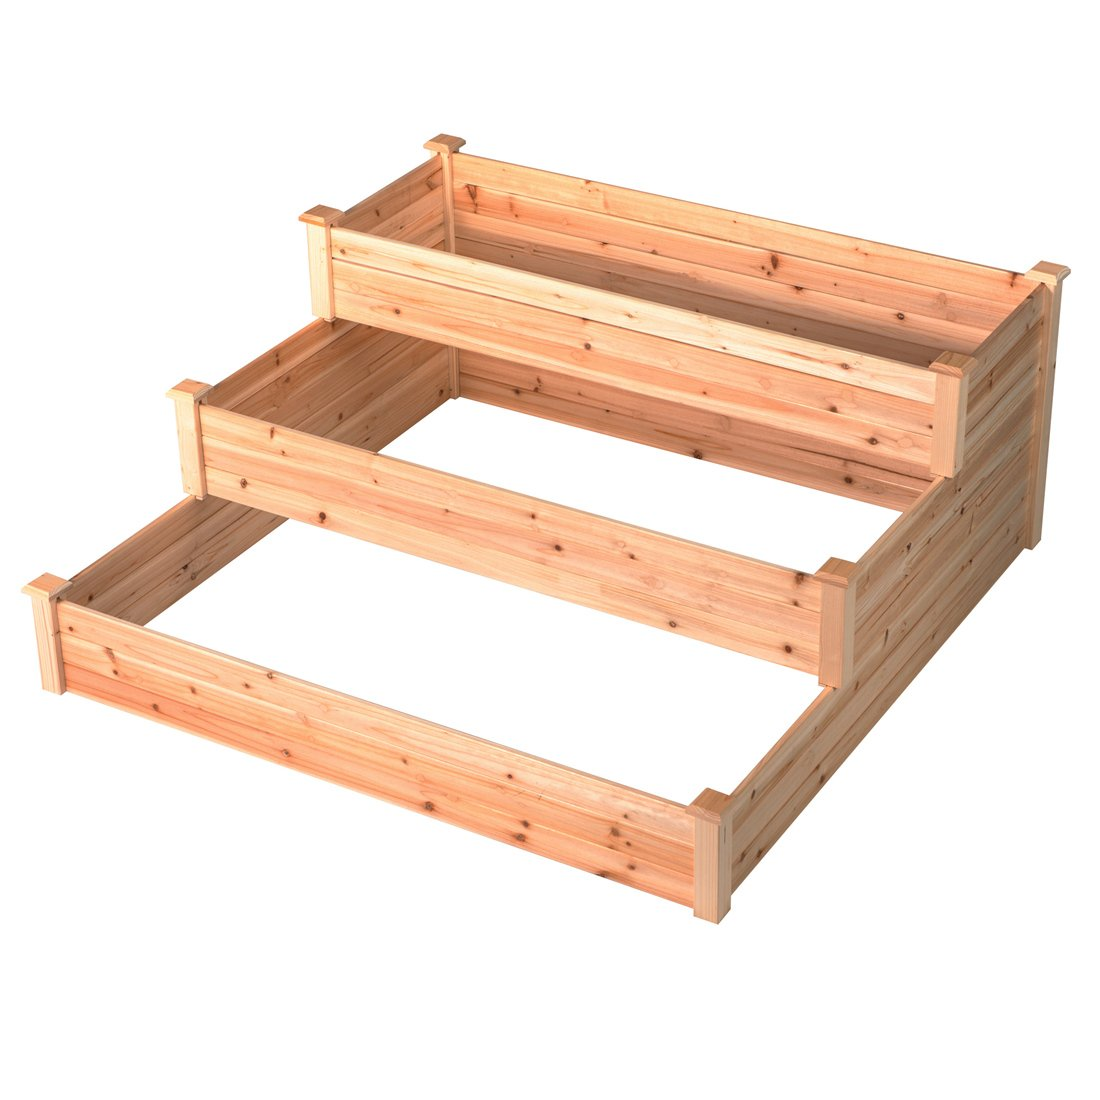 GOOD LIFE Outdoor Patio Wooden 3 Tier Raised Garden Bed Elevated Planter Box Nature Color LNG378